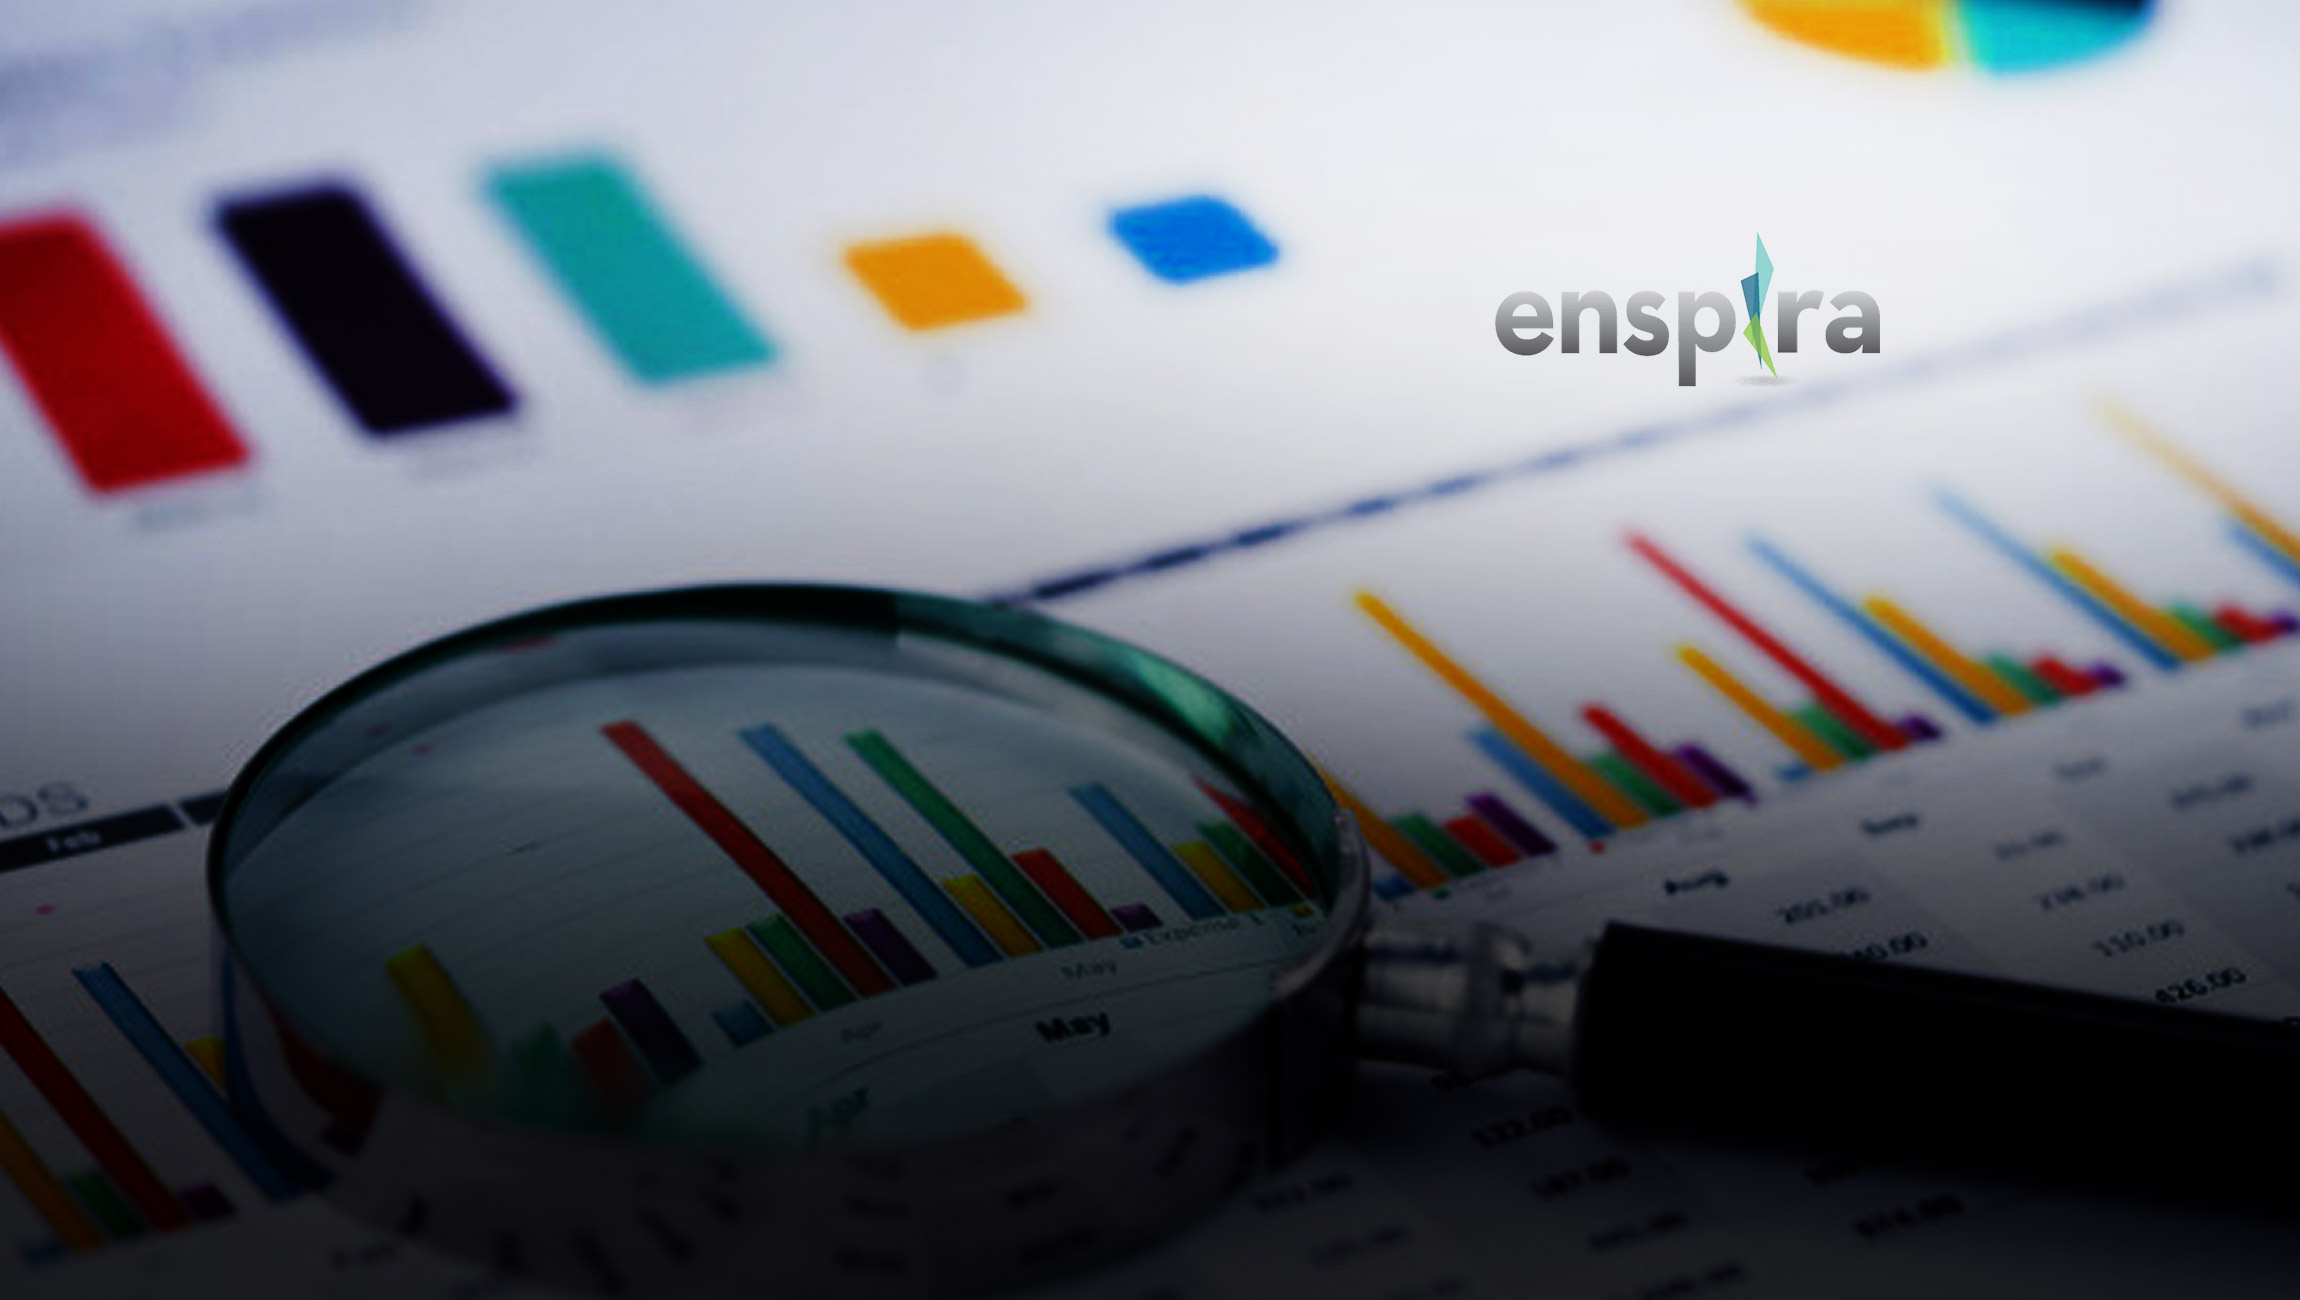 ENSPIRA Bolsters Team to Address Human Resources Consulting Needs of the Financial Services Industry